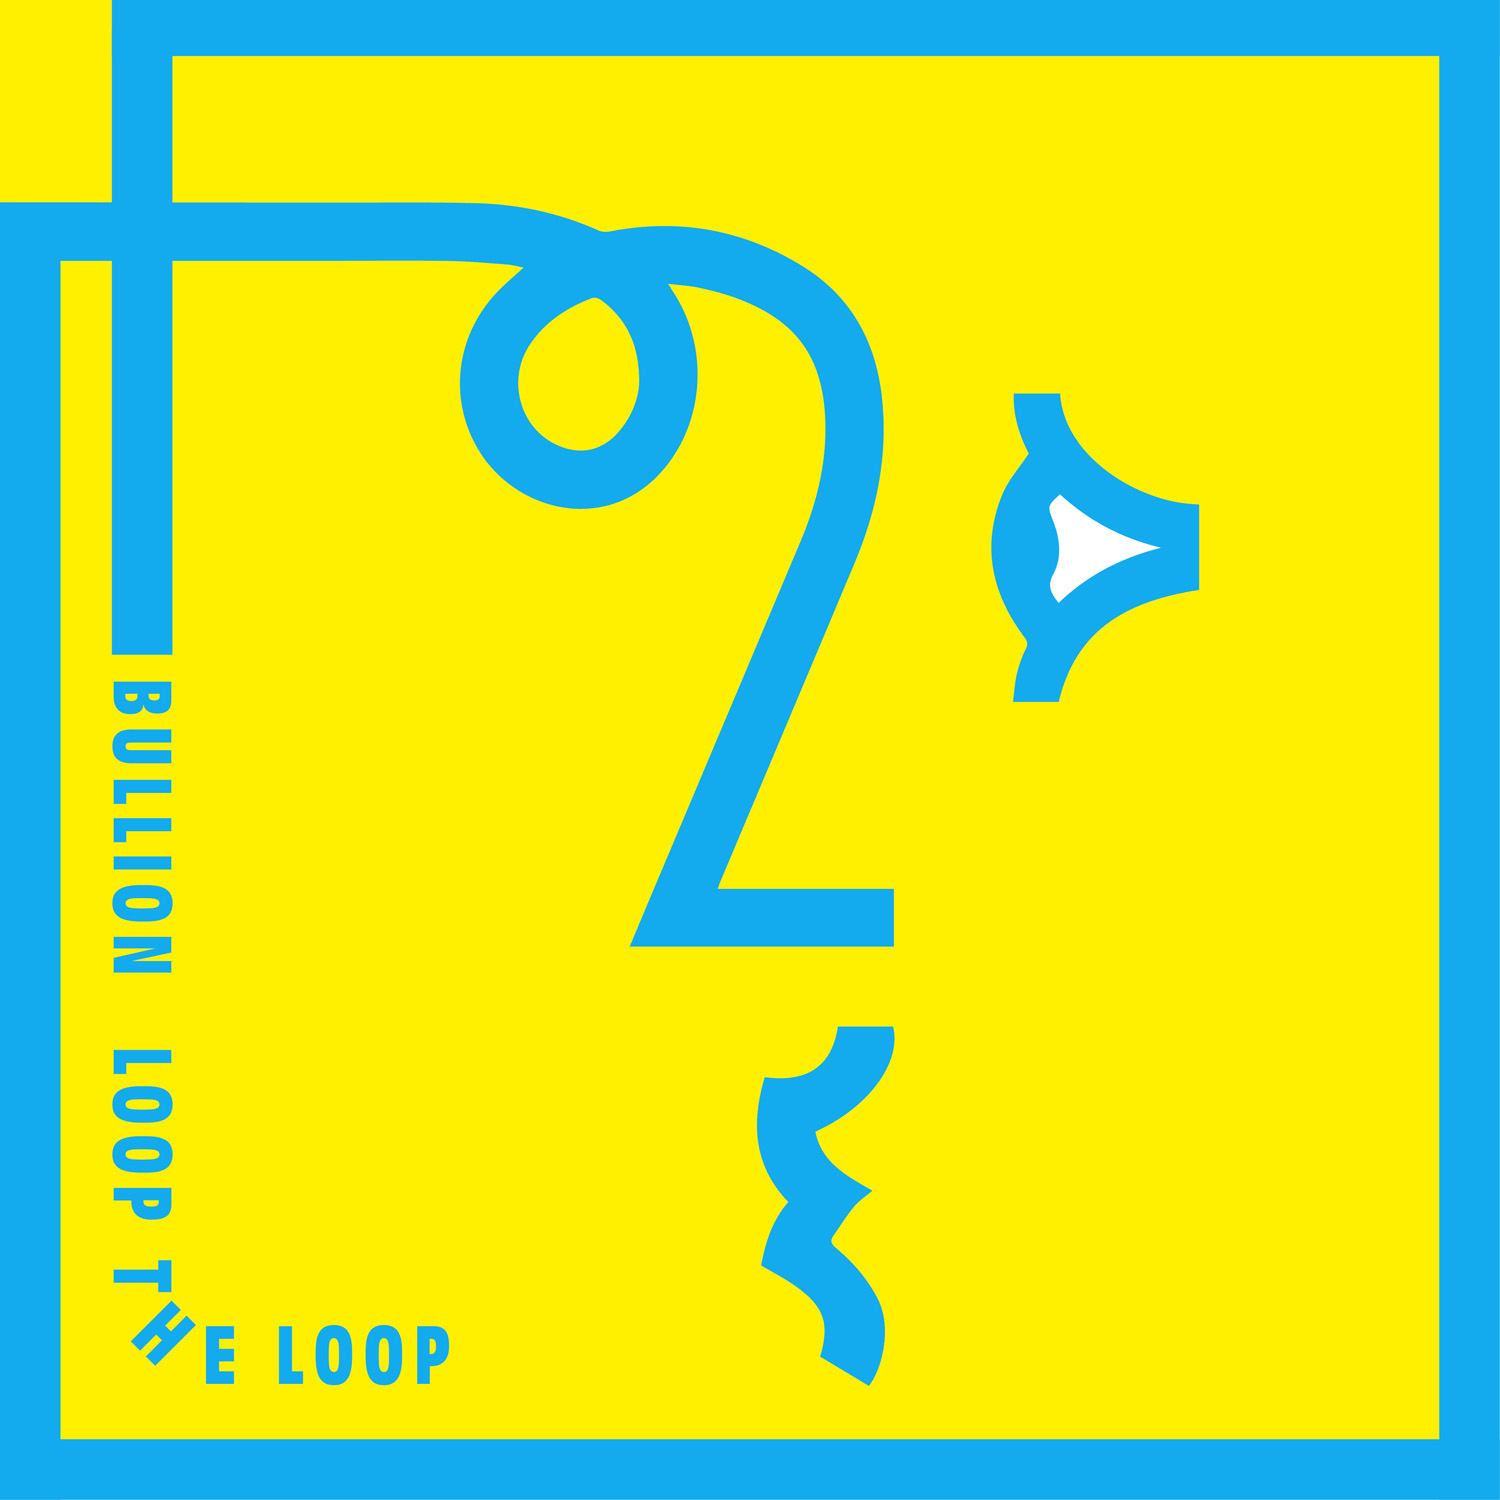 Bullion - Loop the Loop (Deek 2016)